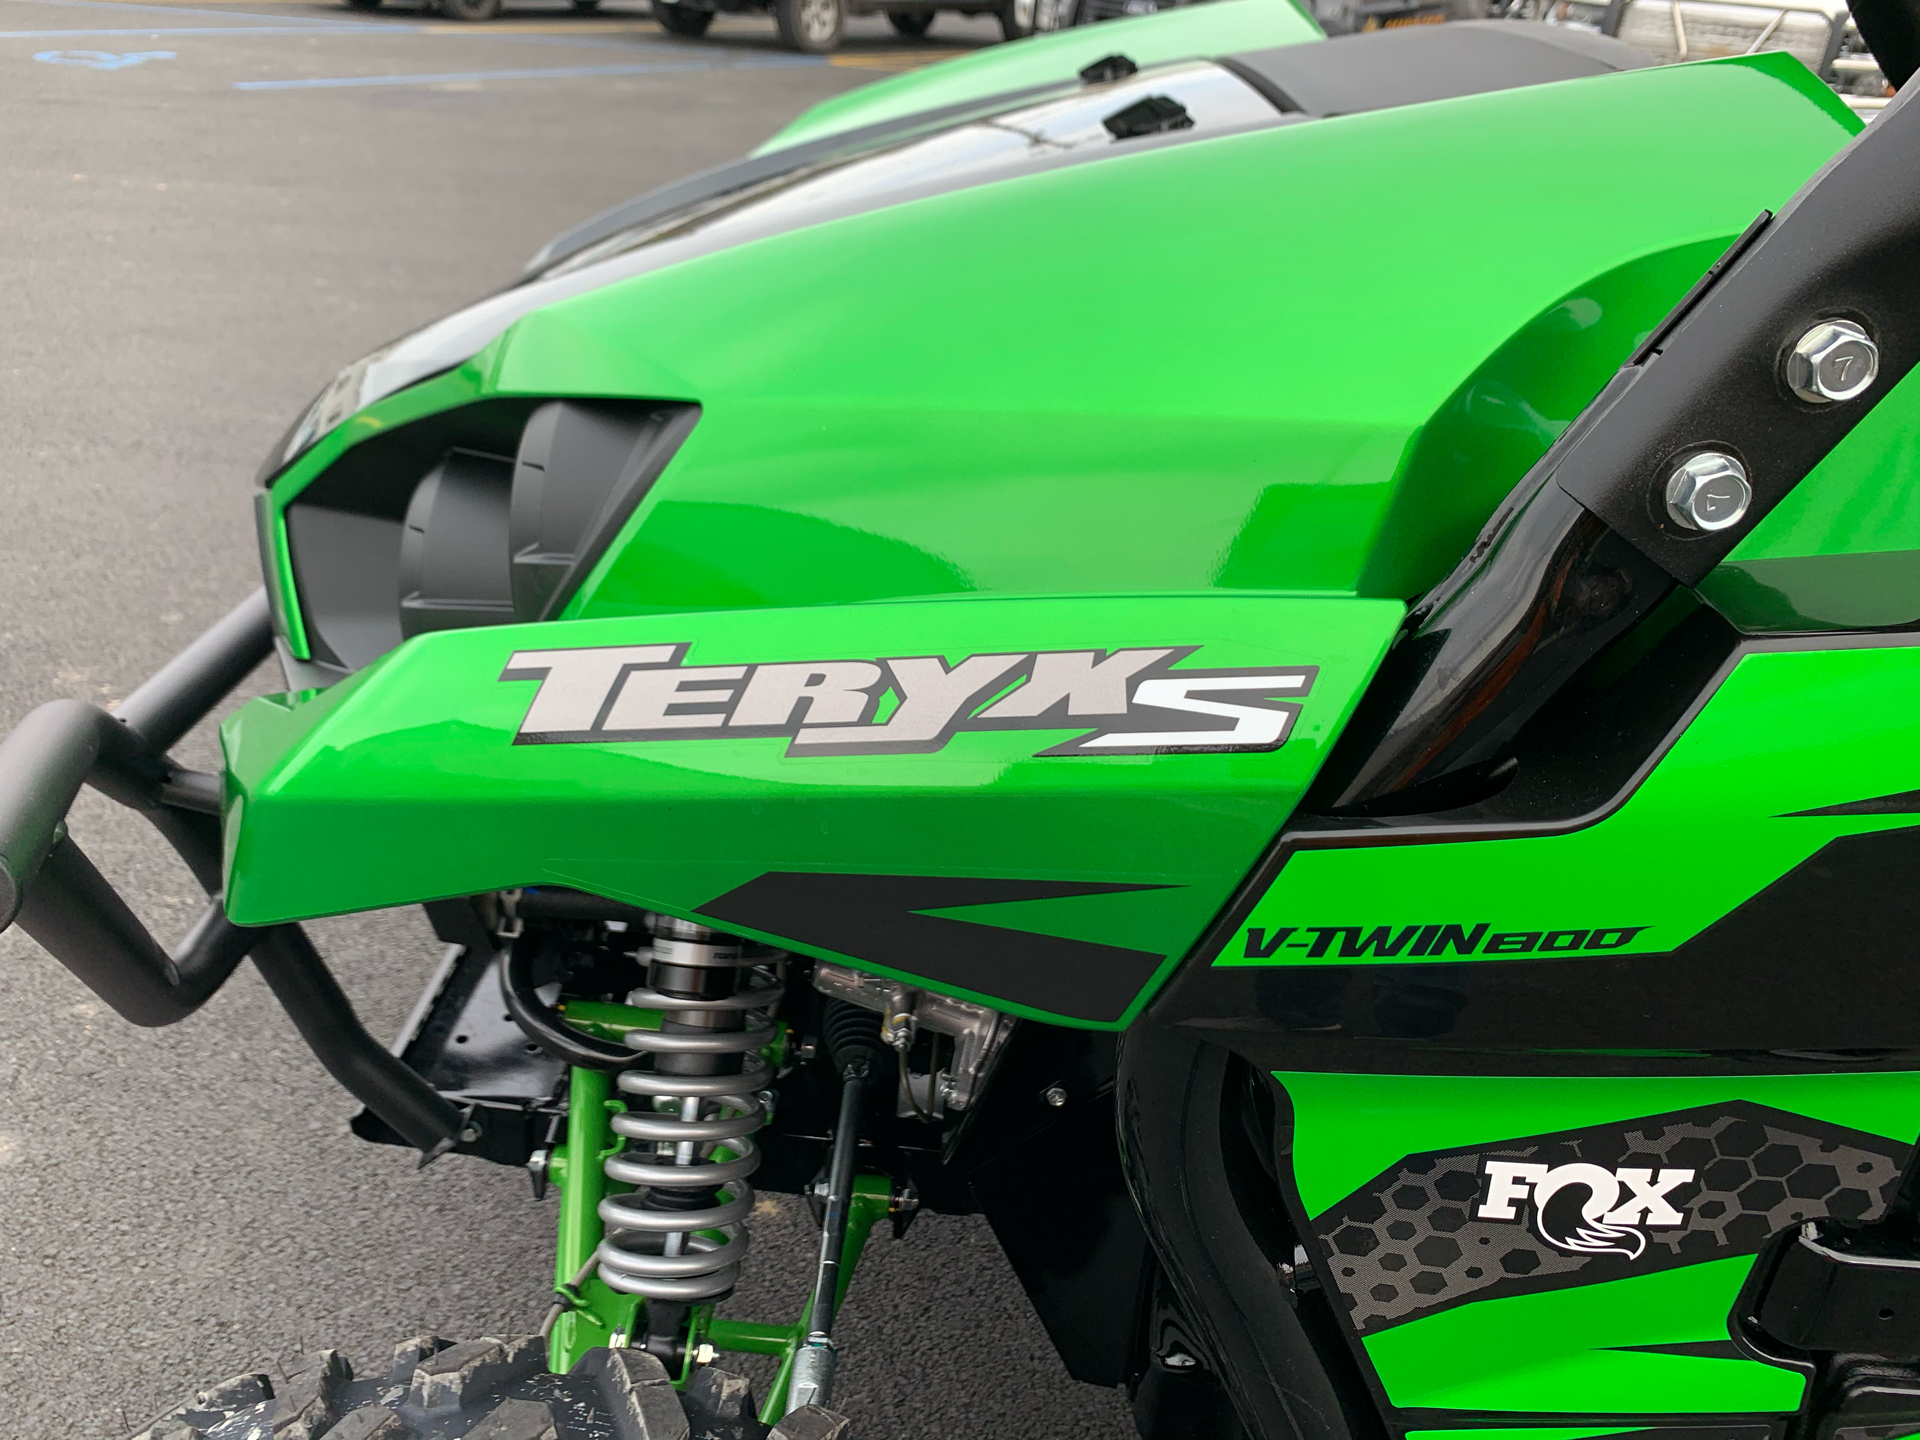 2021 Kawasaki Teryx S LE in Petersburg, West Virginia - Photo 10